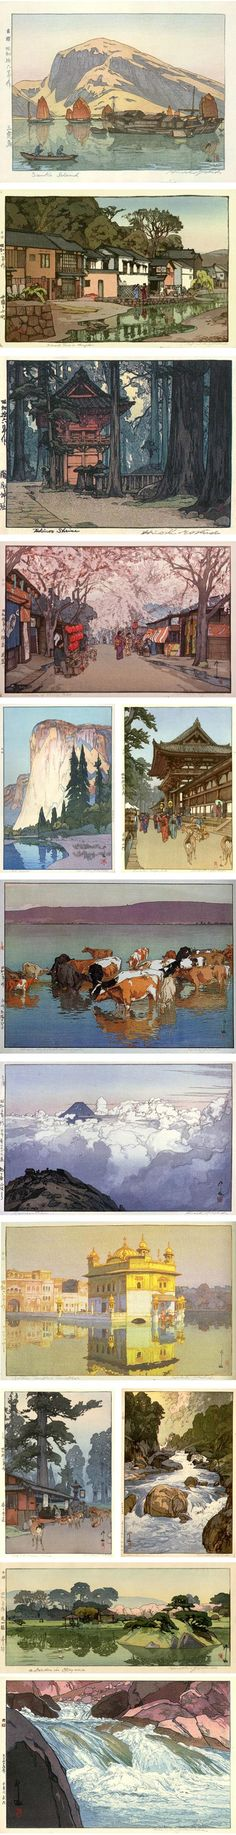 lines and colors :: a blog about drawing, painting, illustration, comics, concept art and other visual arts » Hiroshi Yoshida (update)